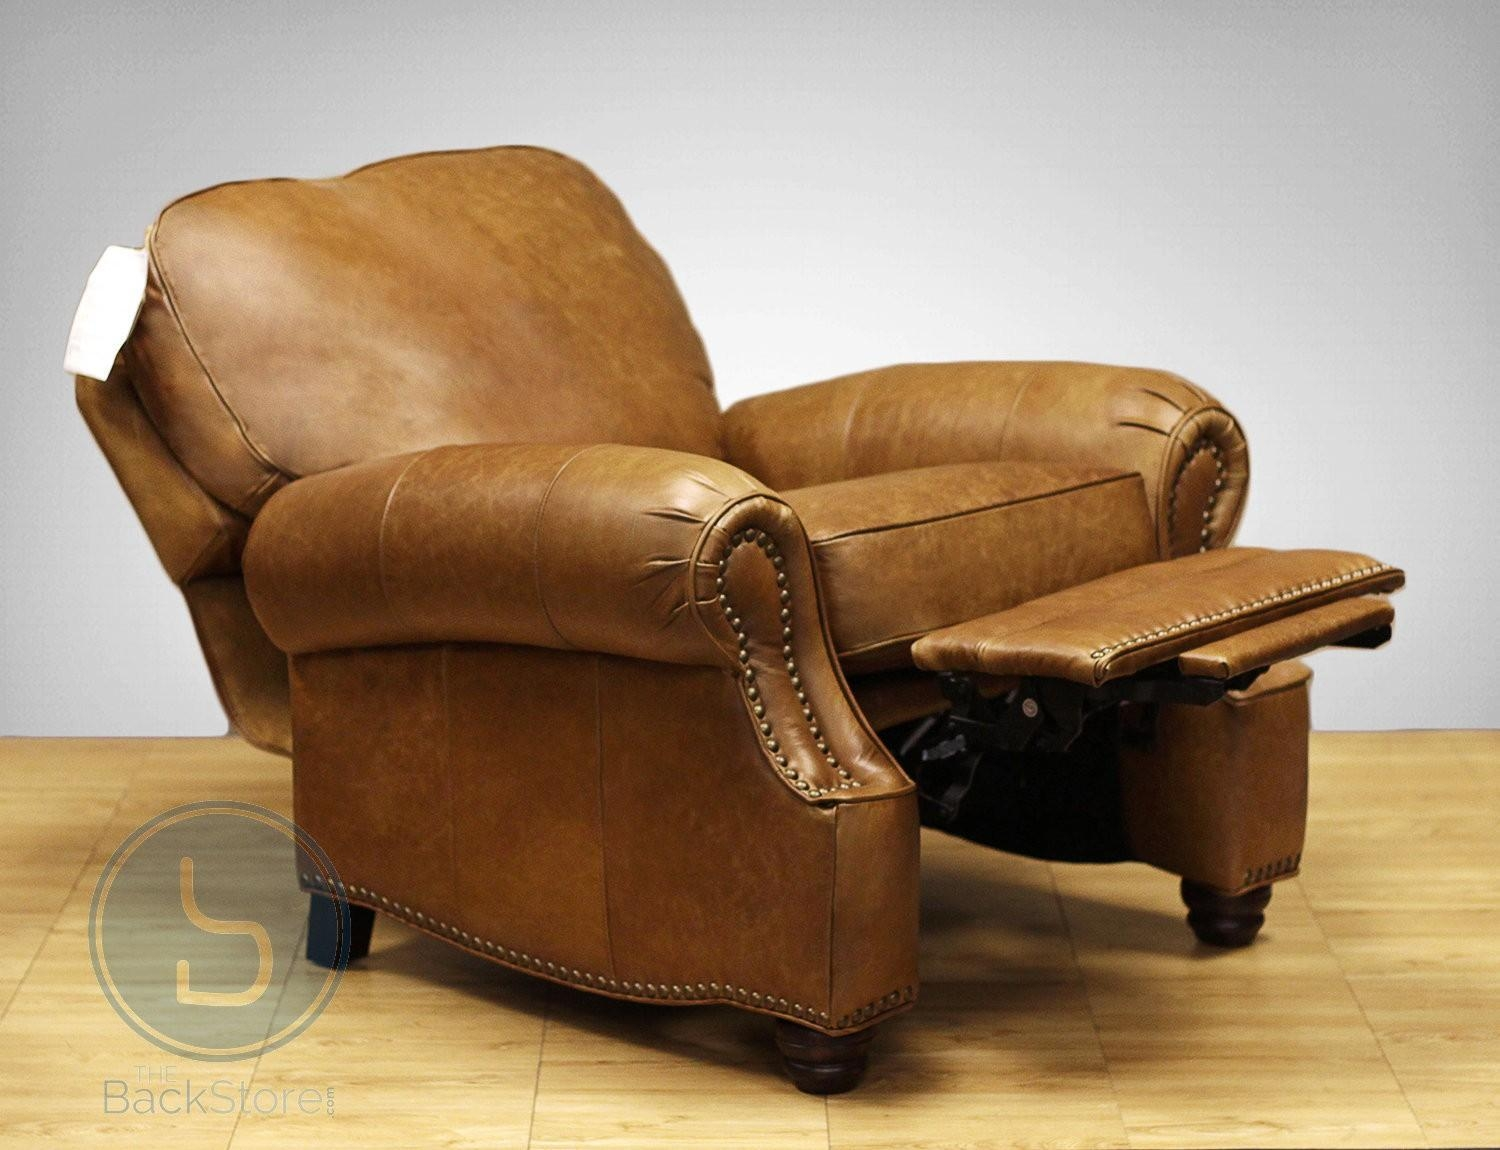 Barcalounger Longhorn Ii Leather Recliner Chair Regarding Barcalounger Sofas (Image 10 of 20)